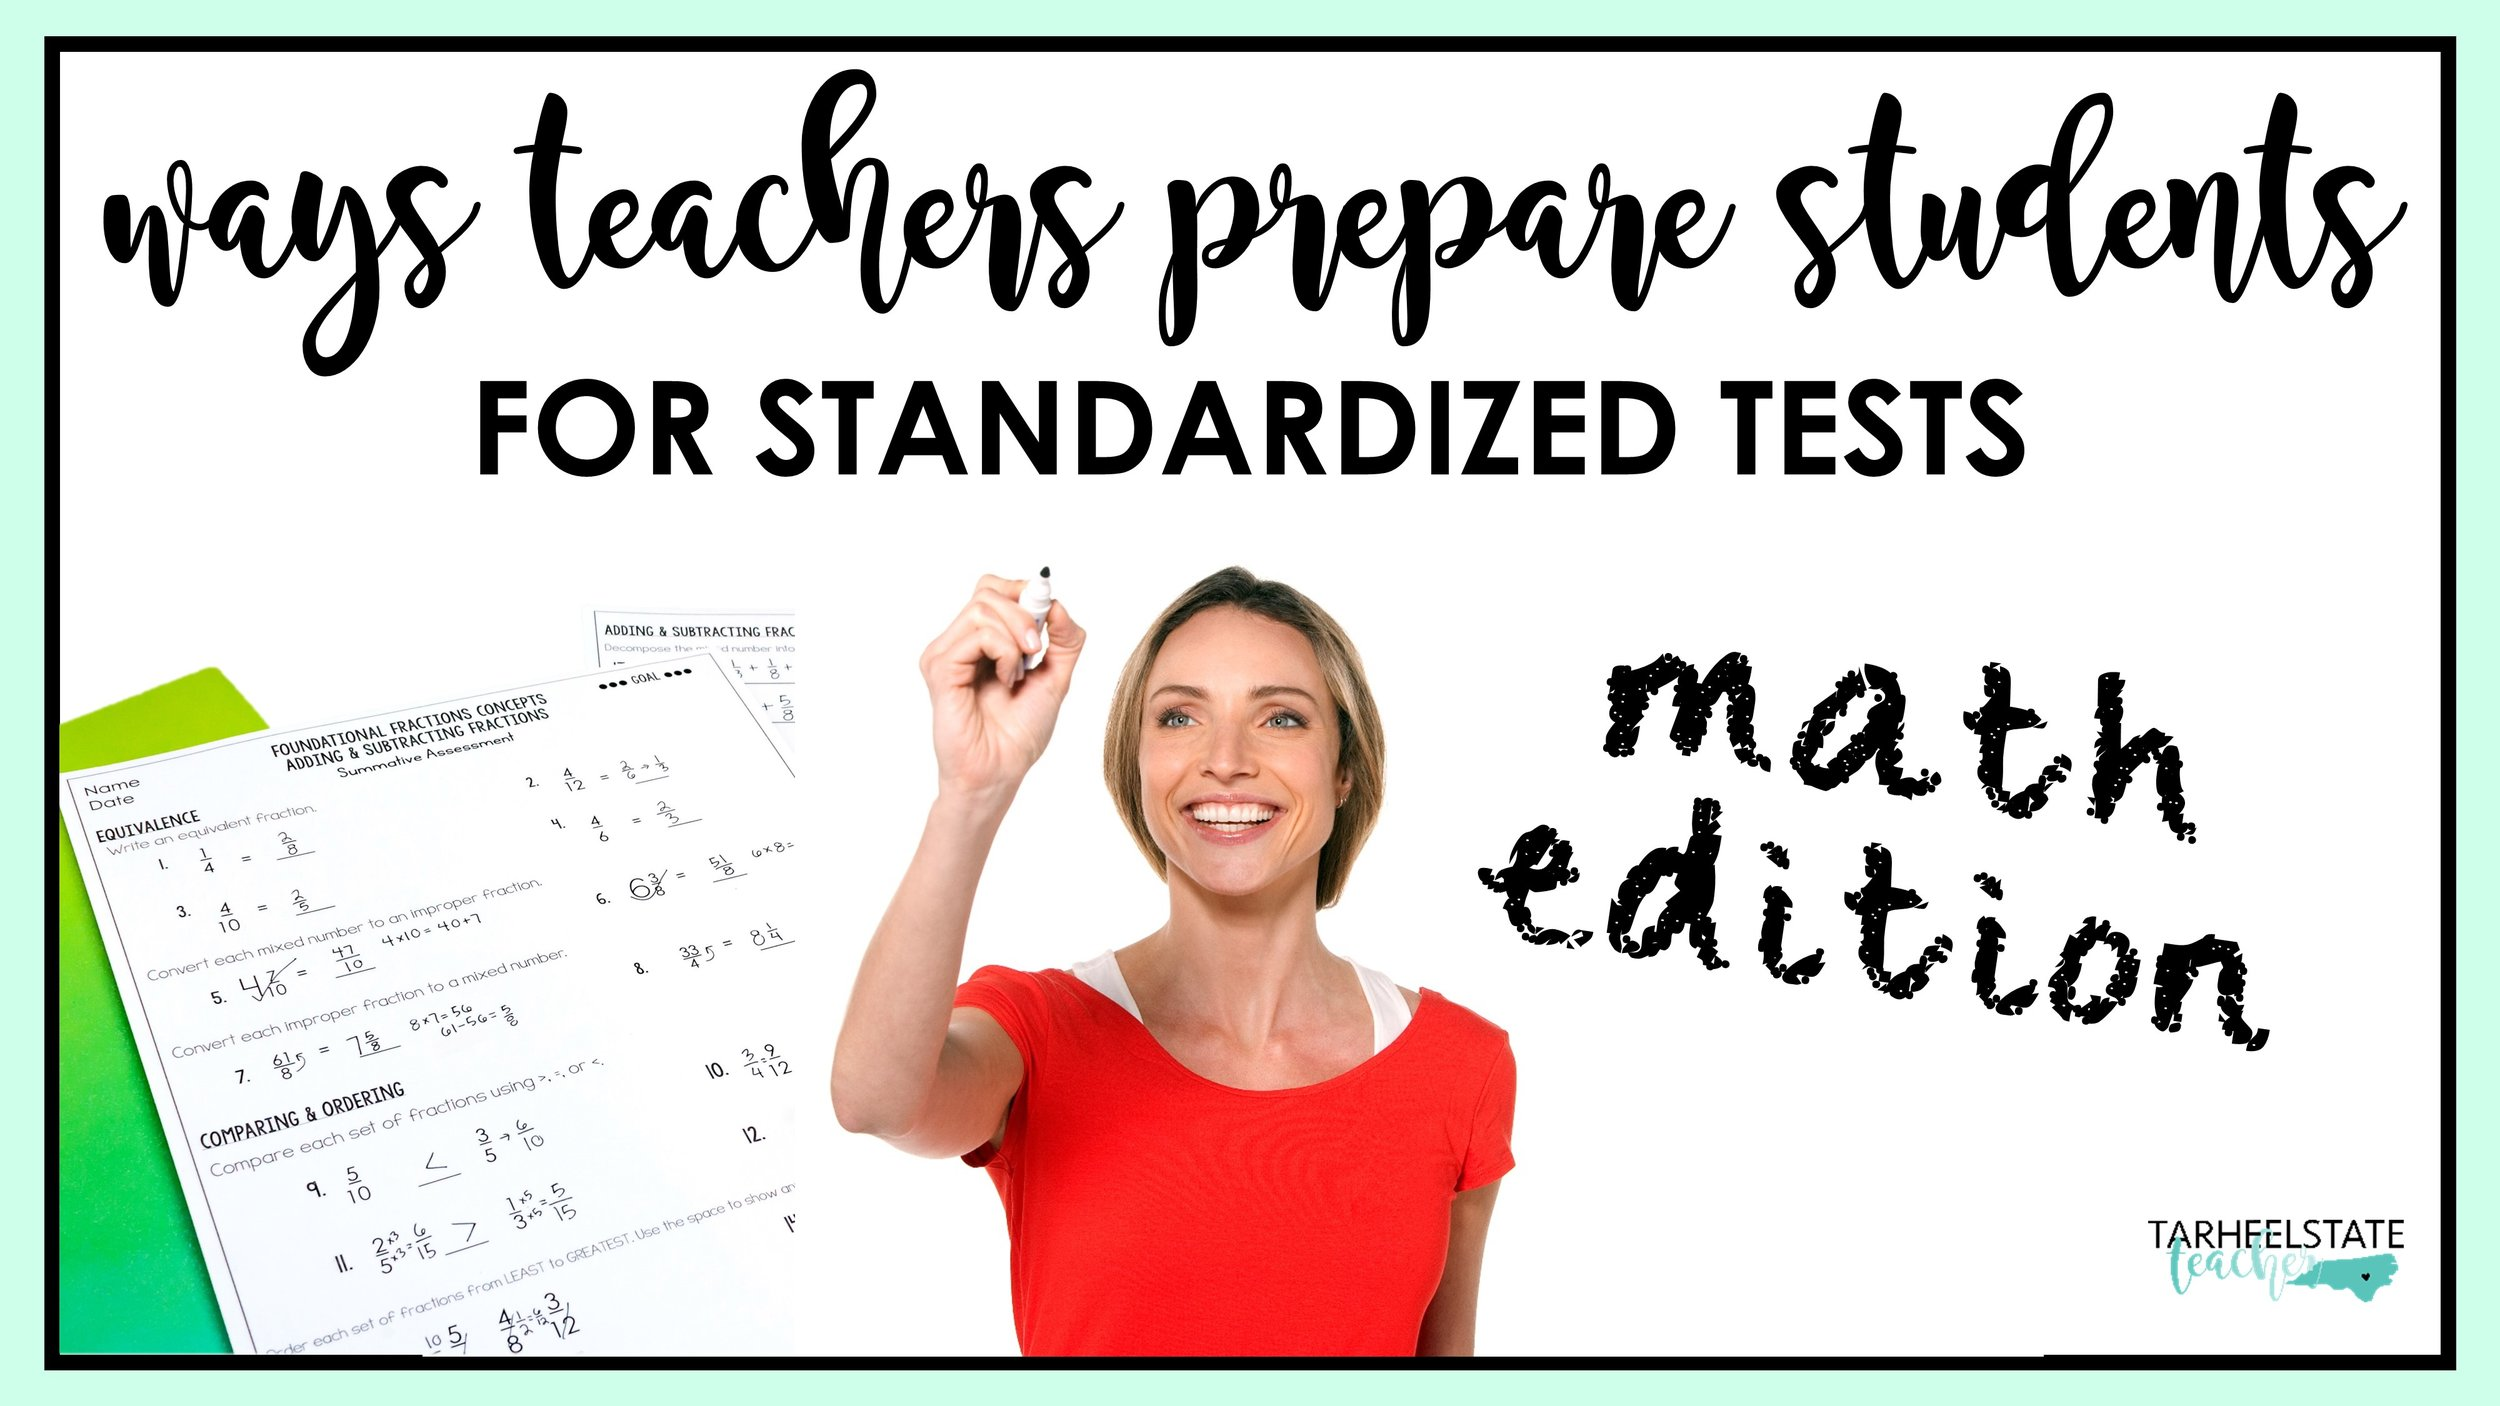 Ways teachers prepare students for standardized tests 2.JPG